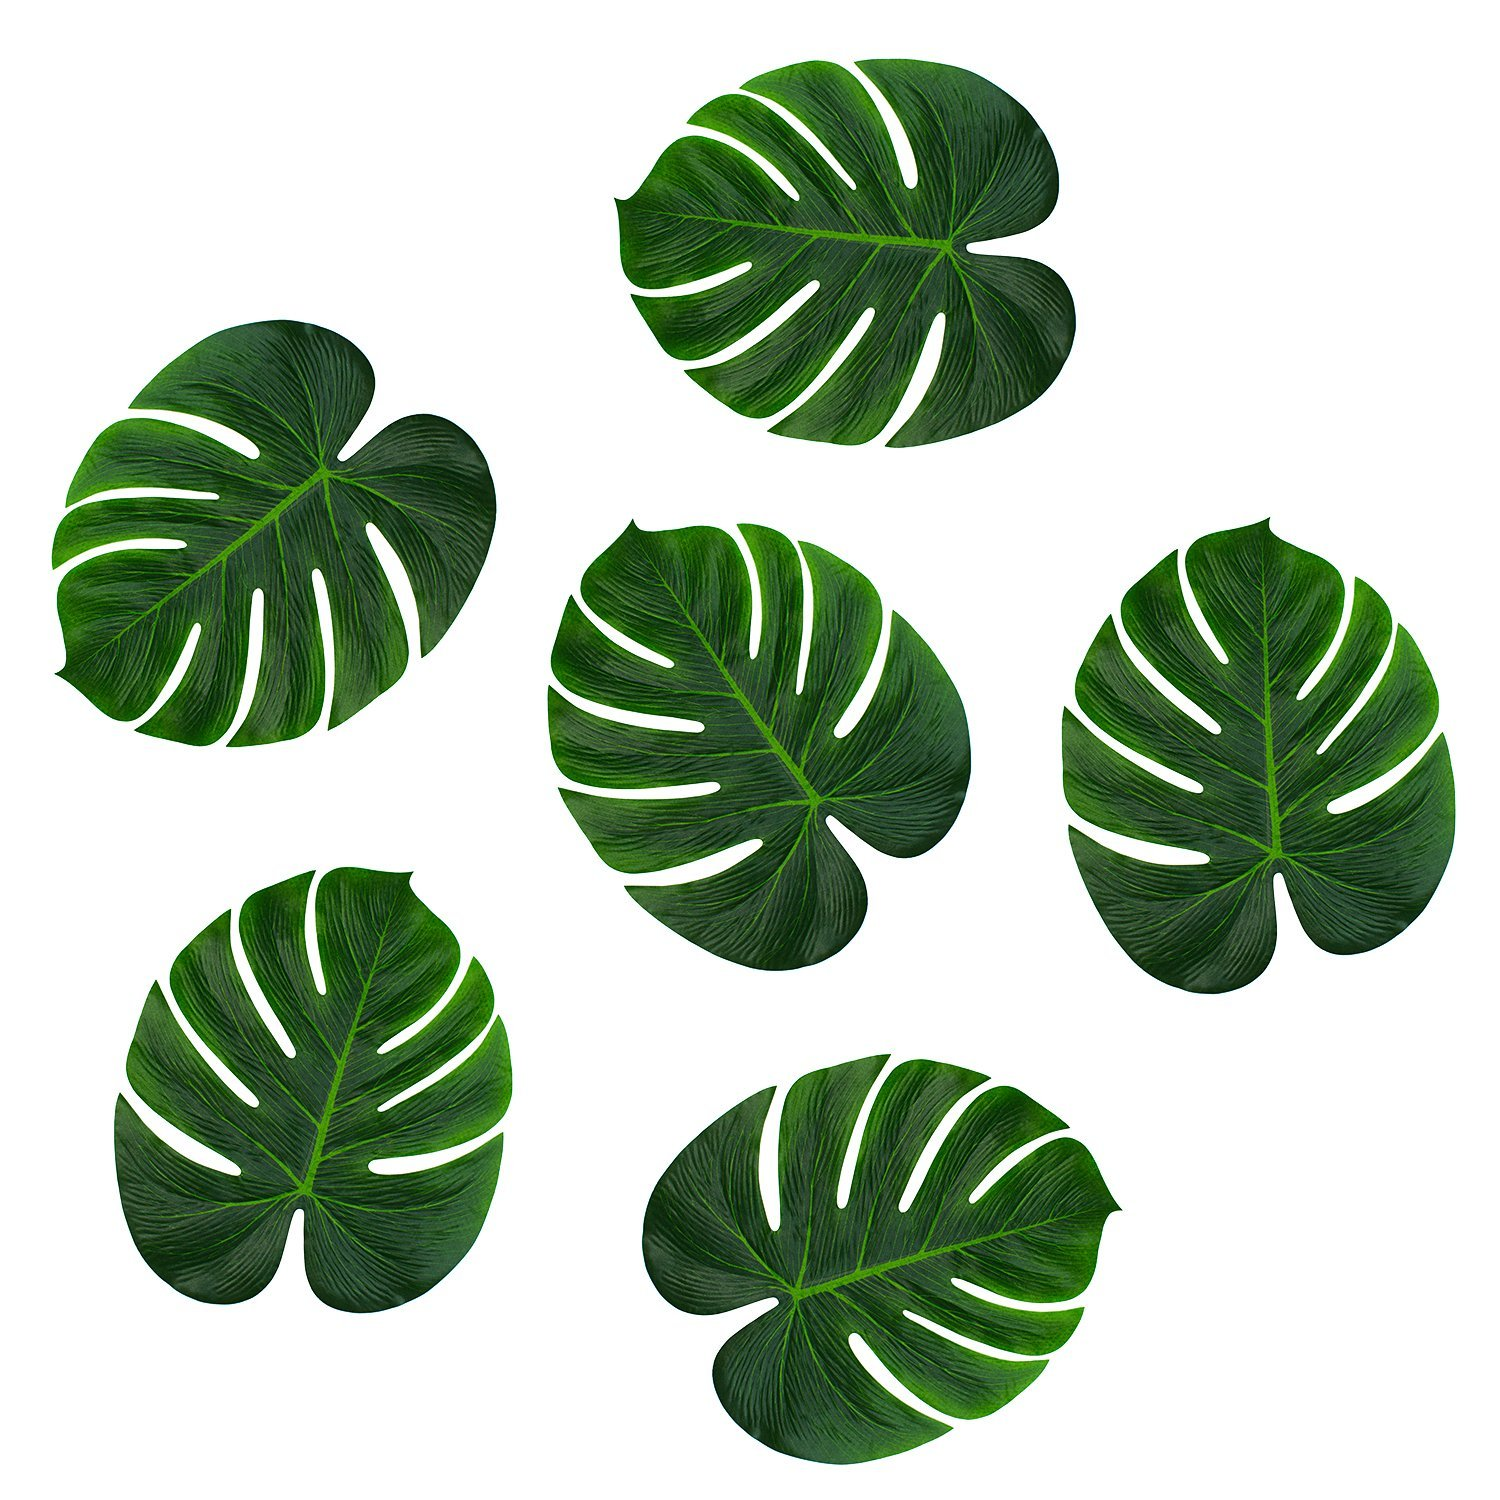 Amazon.com: Tropical Imitation Green Plant Paper Leaves 13